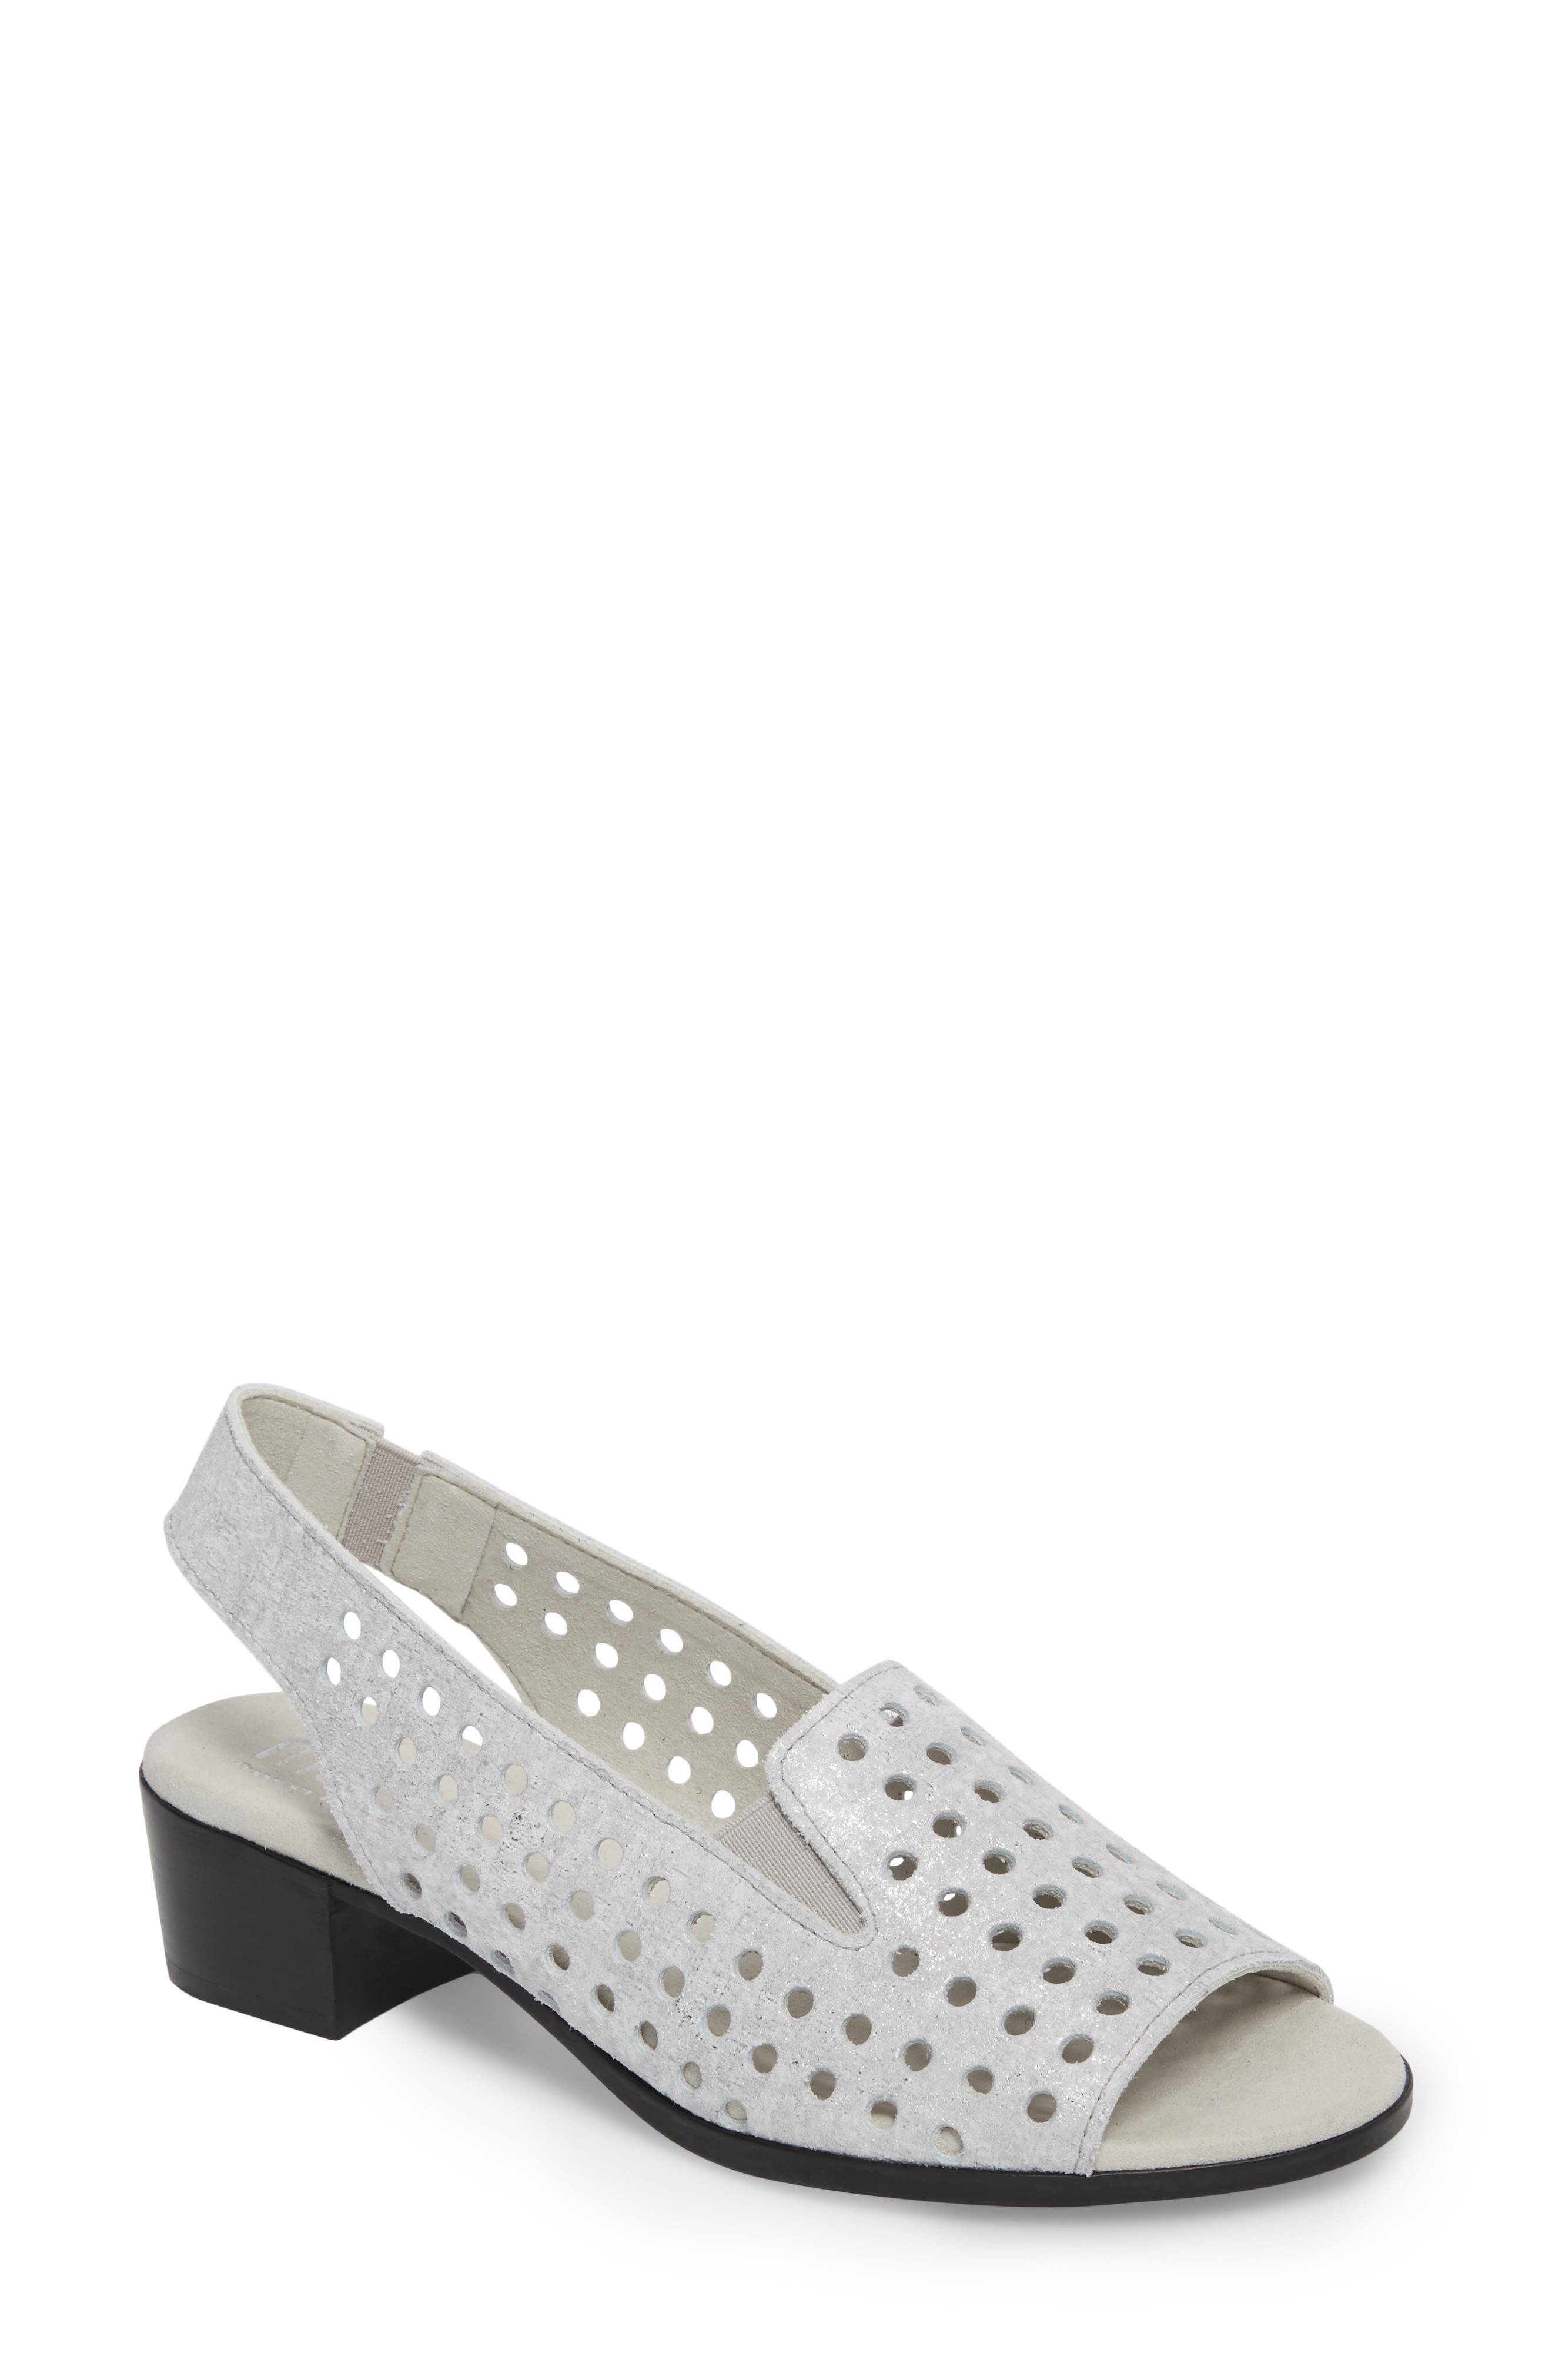 Mickee Slingback Sandal,                         Main,                         color, SILVER METALLIC SUEDE